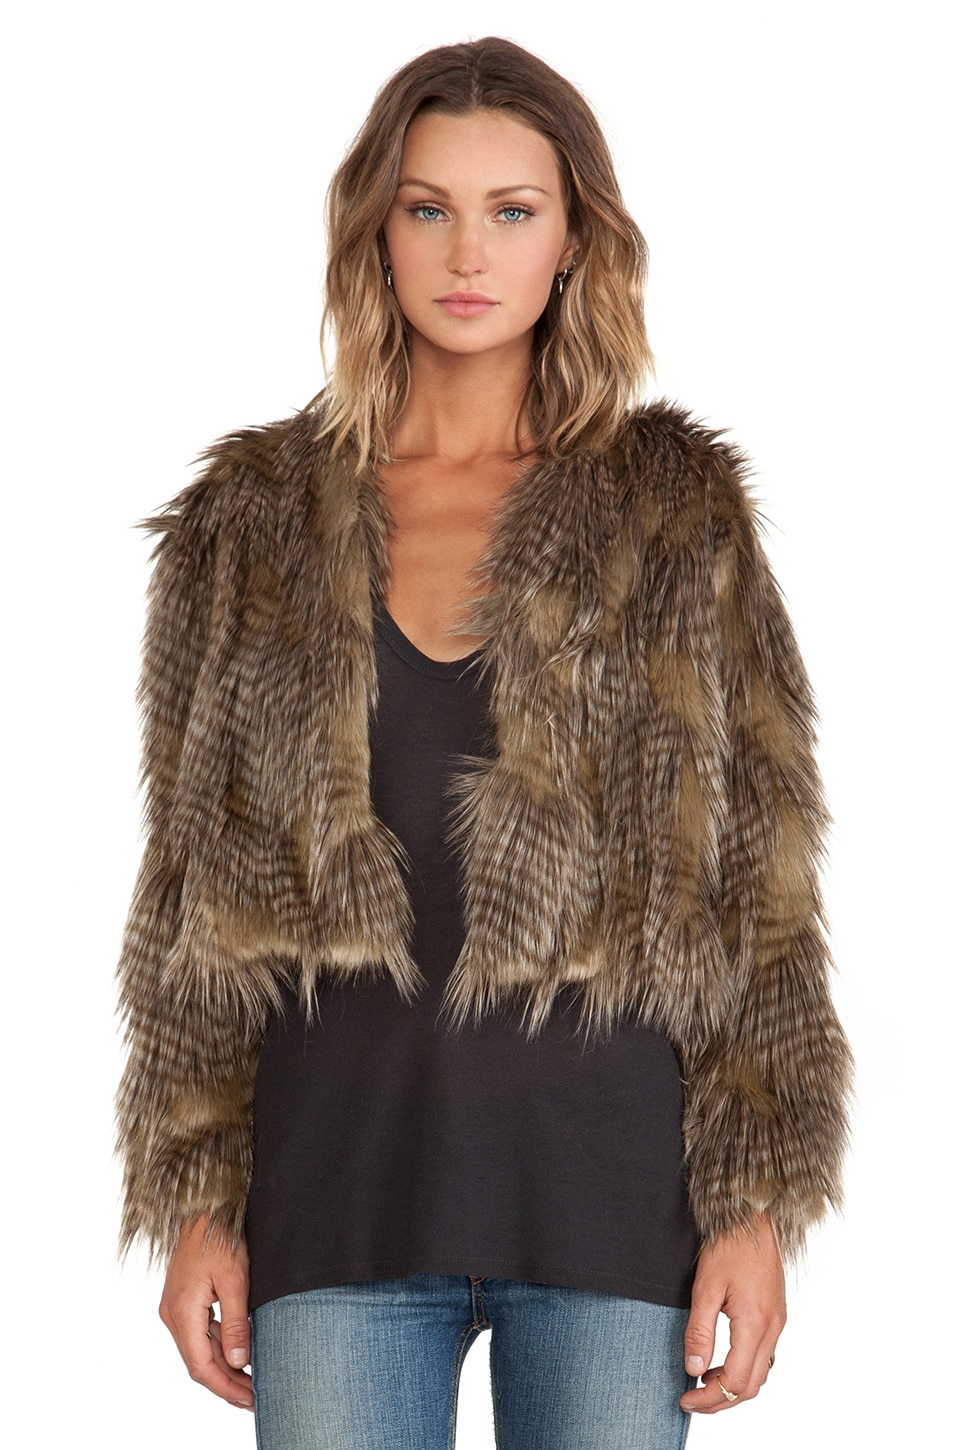 BSABLE Lauren Faux Fur Jacket in Golden Feather